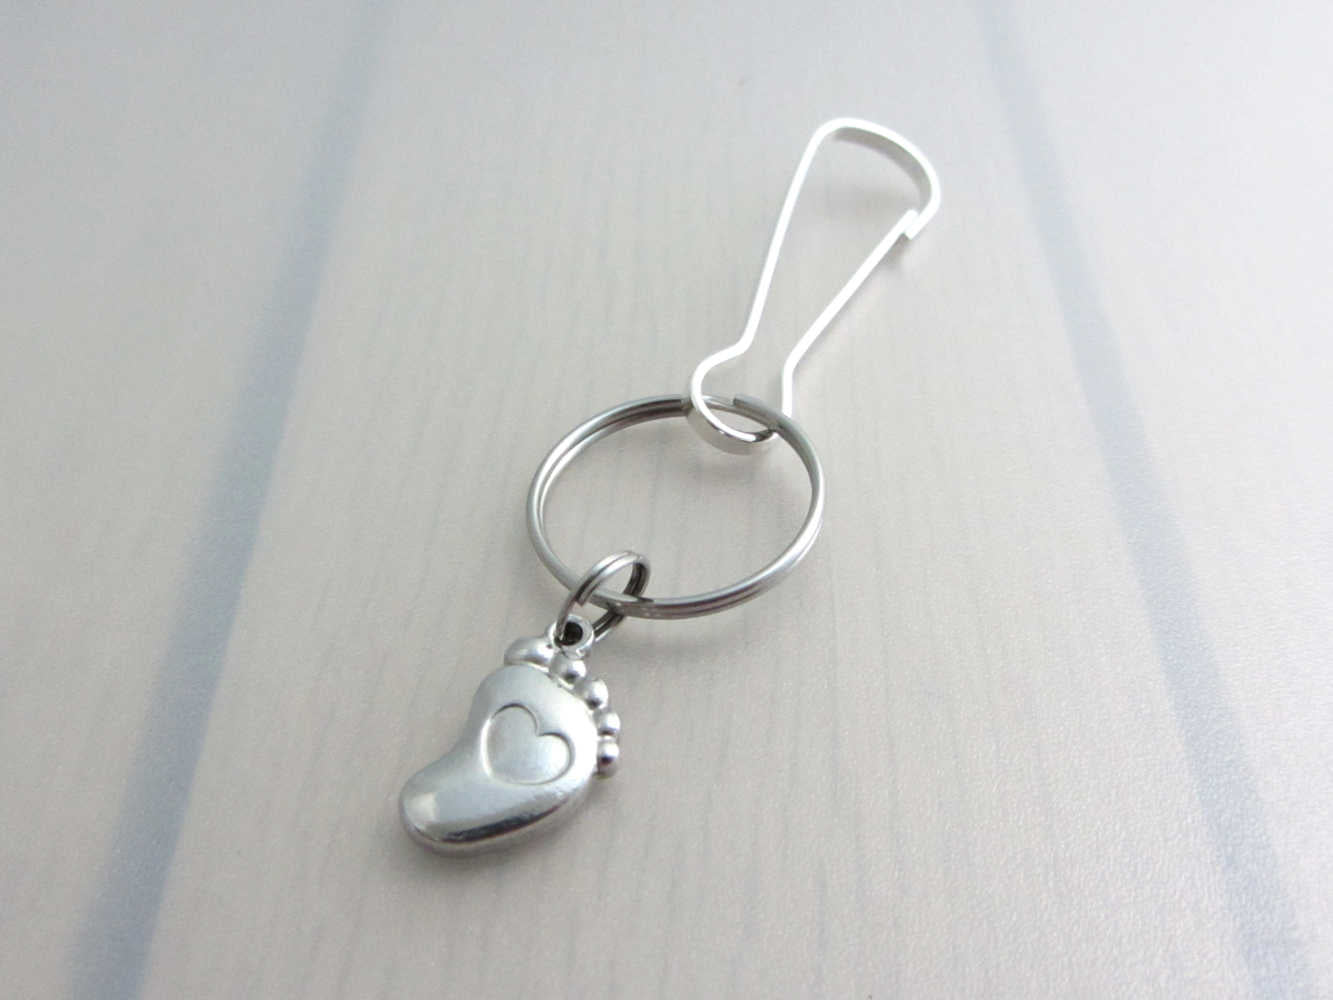 stainless steel single foot charm with indented heart on a bag charm with snap clip hook